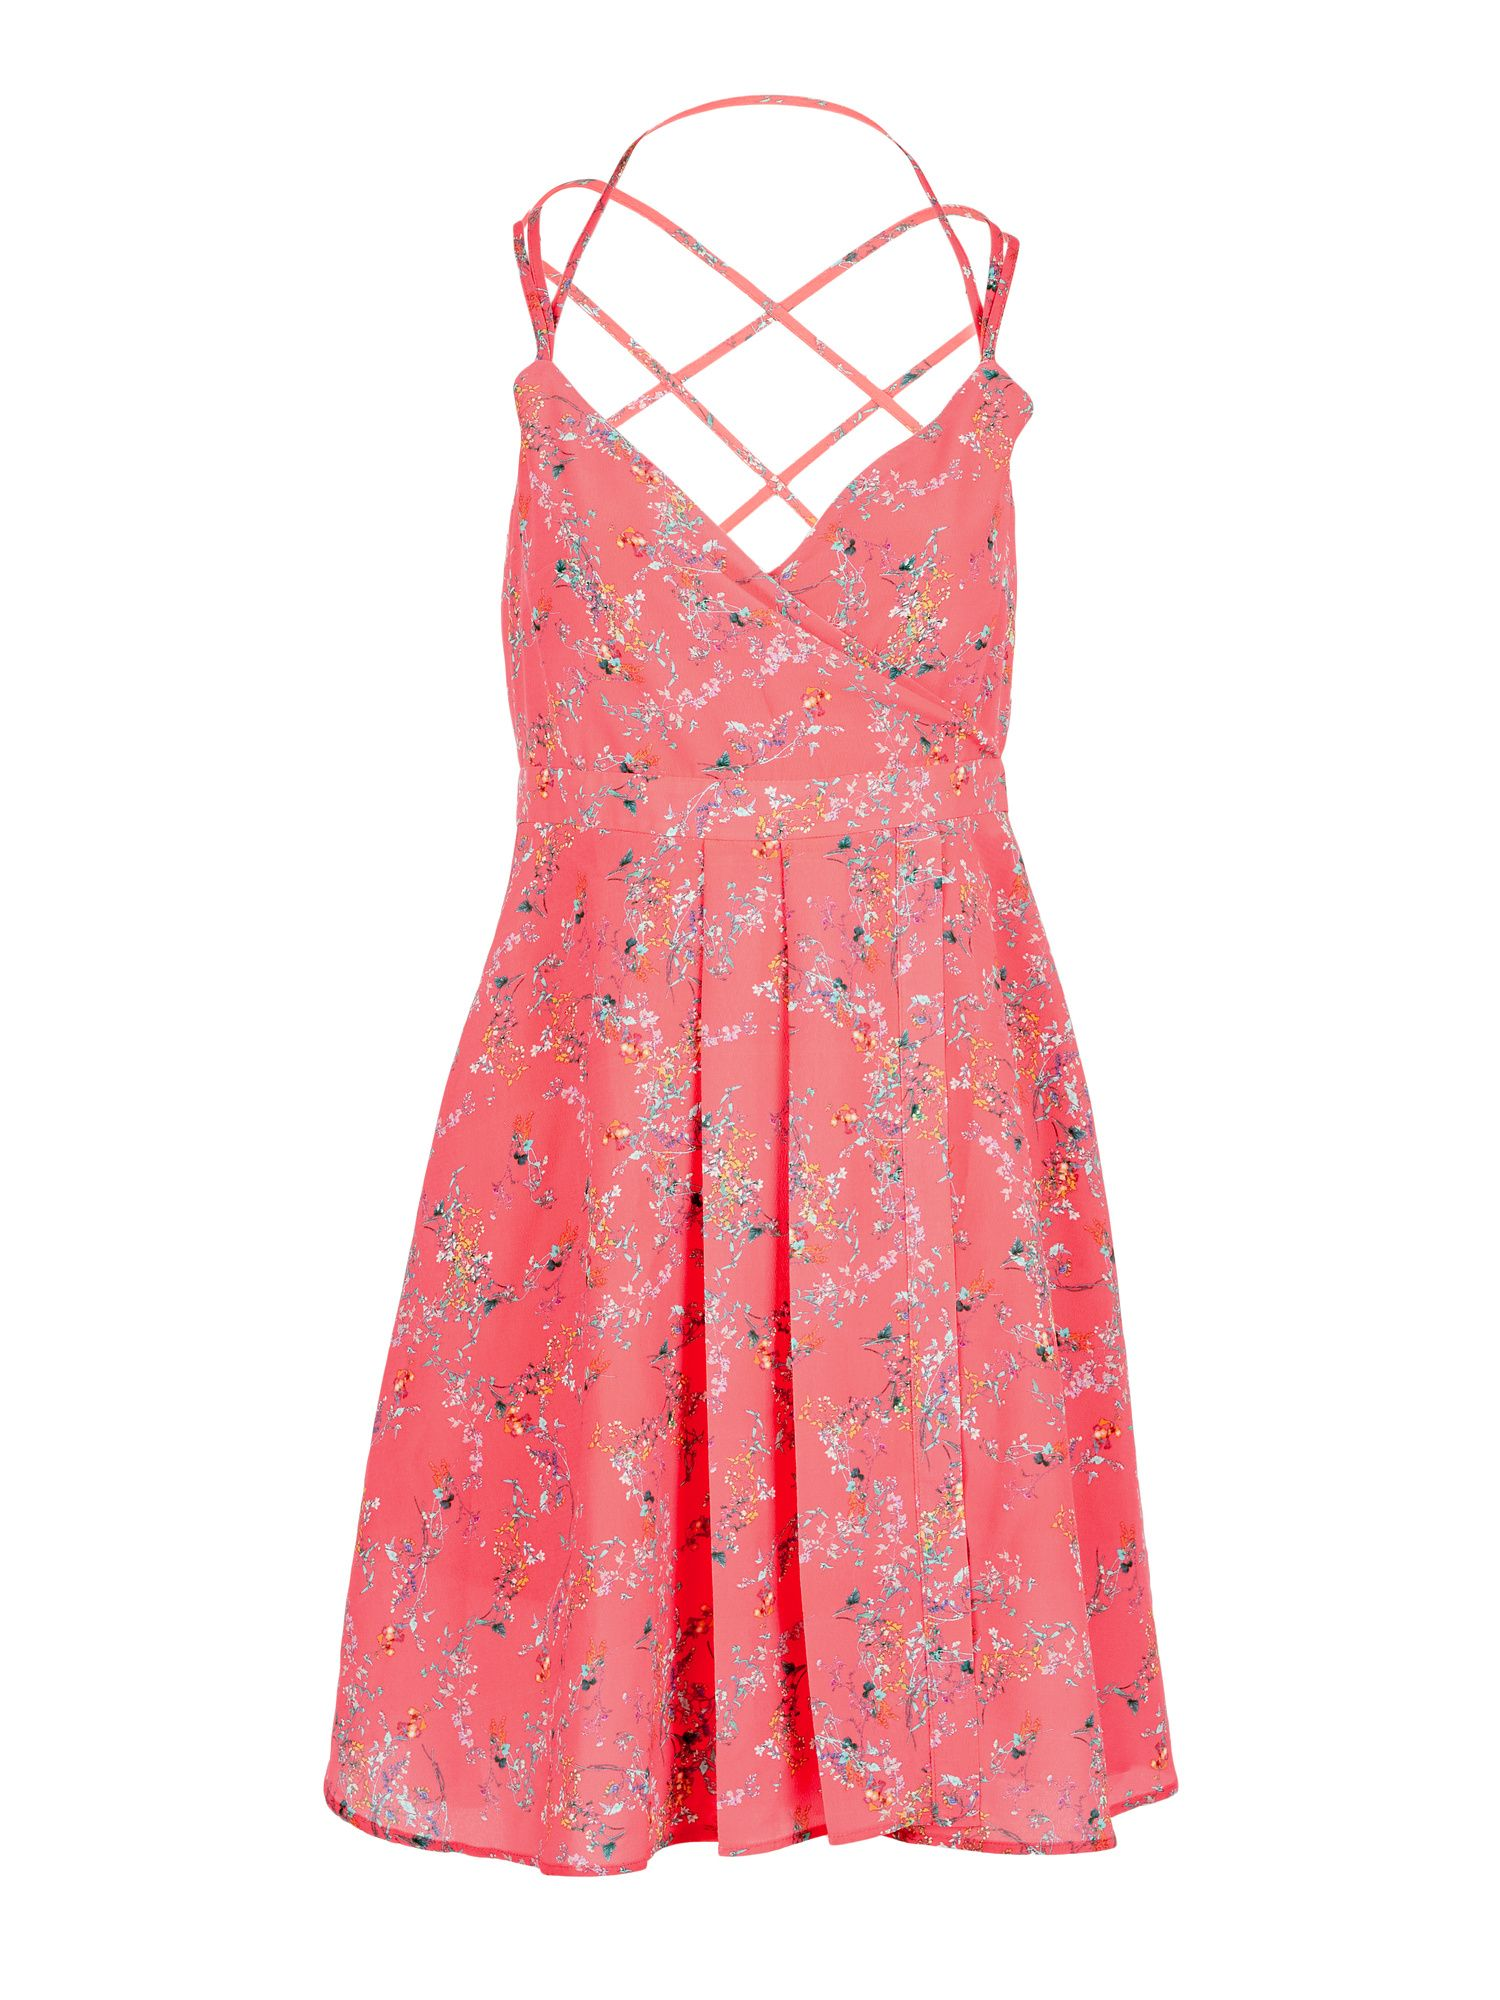 Morgan Criss Cross Straps Flower Print Dress, Coral